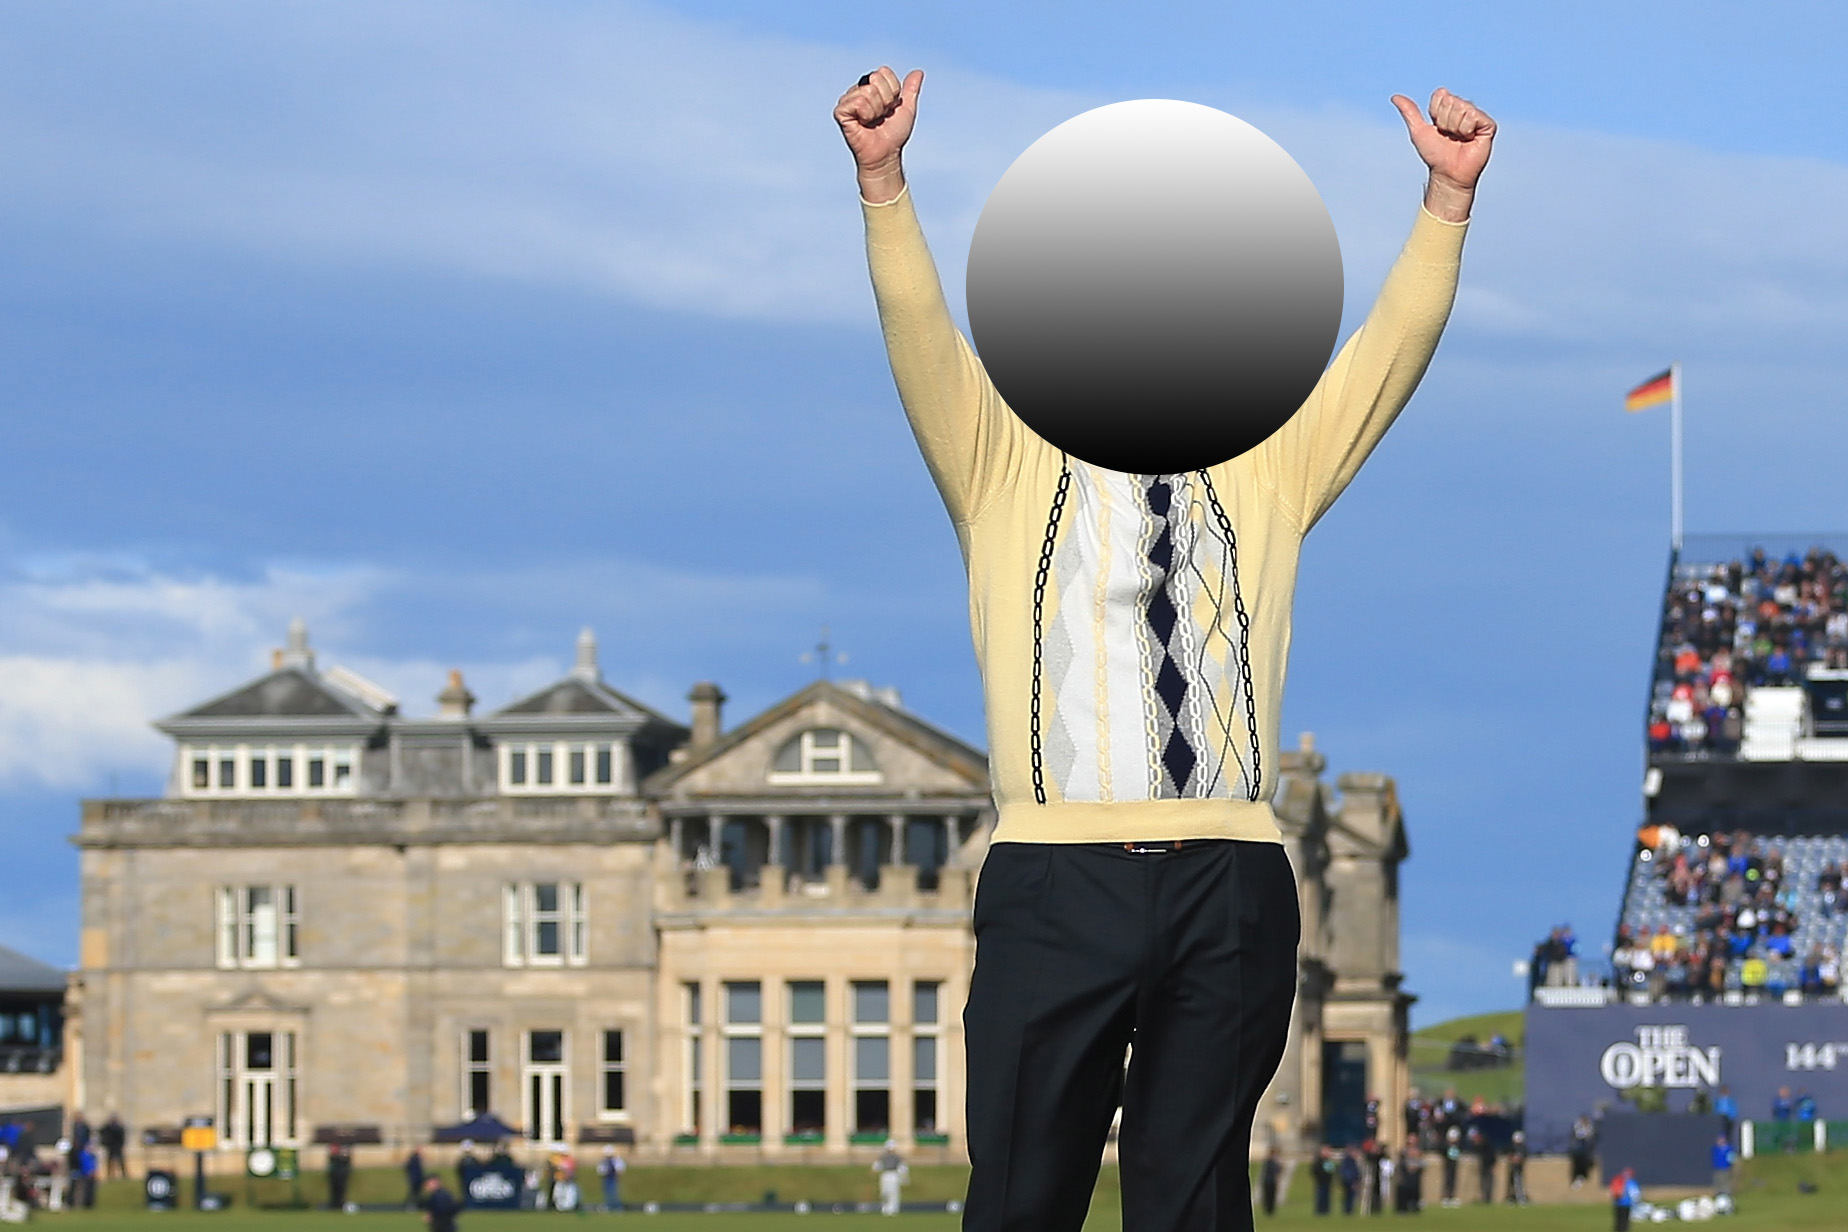 We've covered the faces of 20 world famous golfers. Only 2% of fans can identify them!